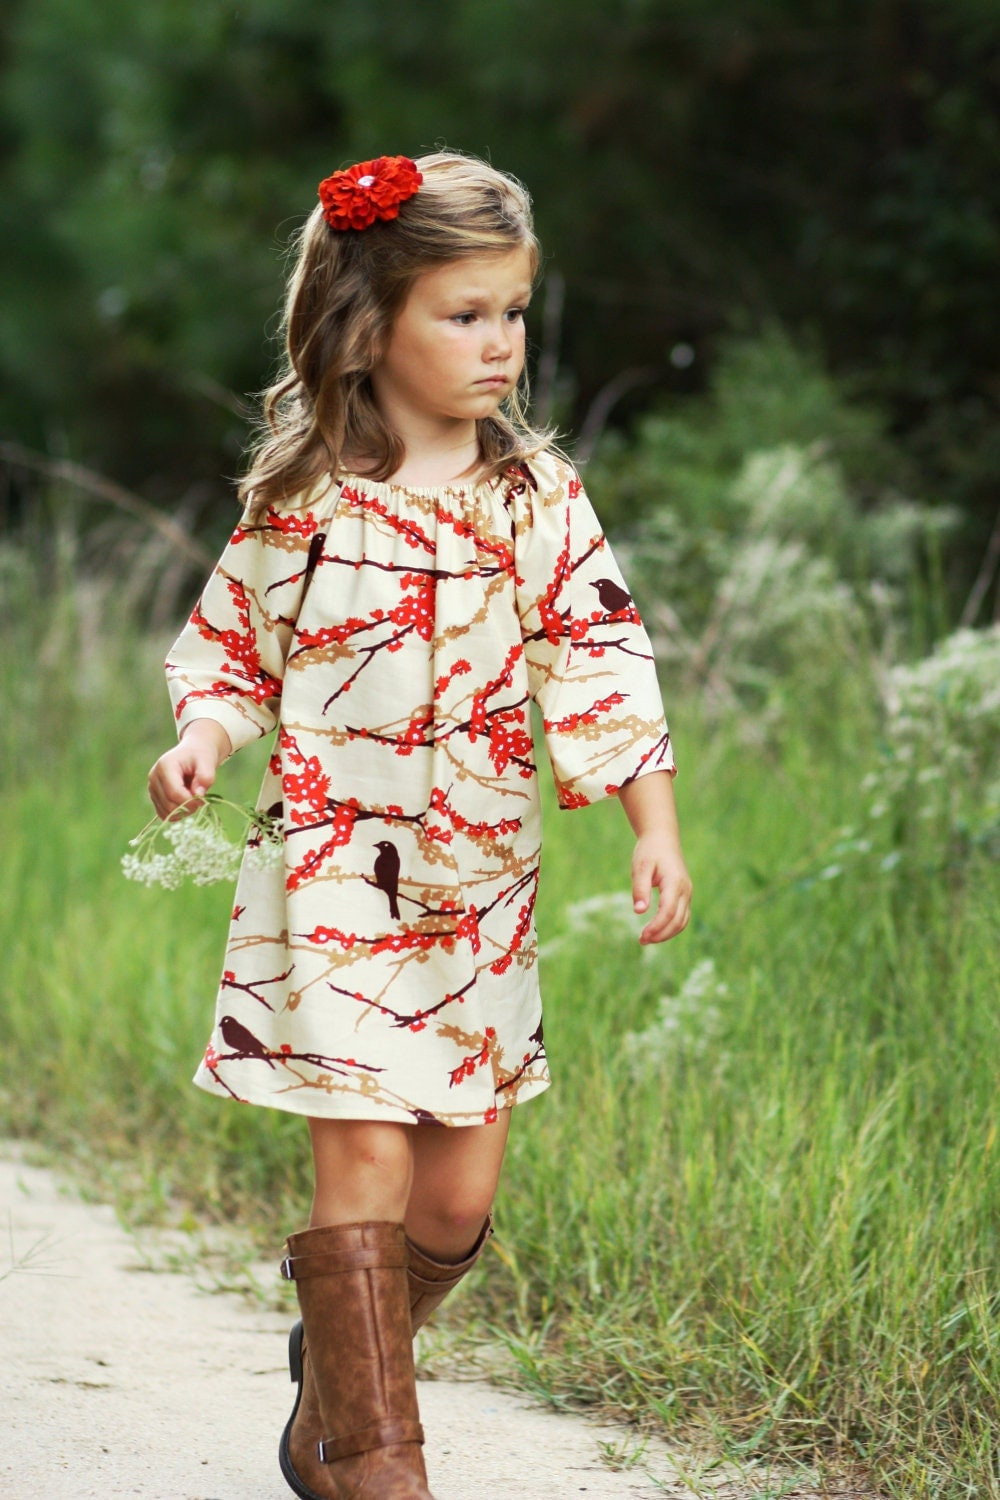 Designer Baby Clothes Luver Back To School Fashion For Little Girls